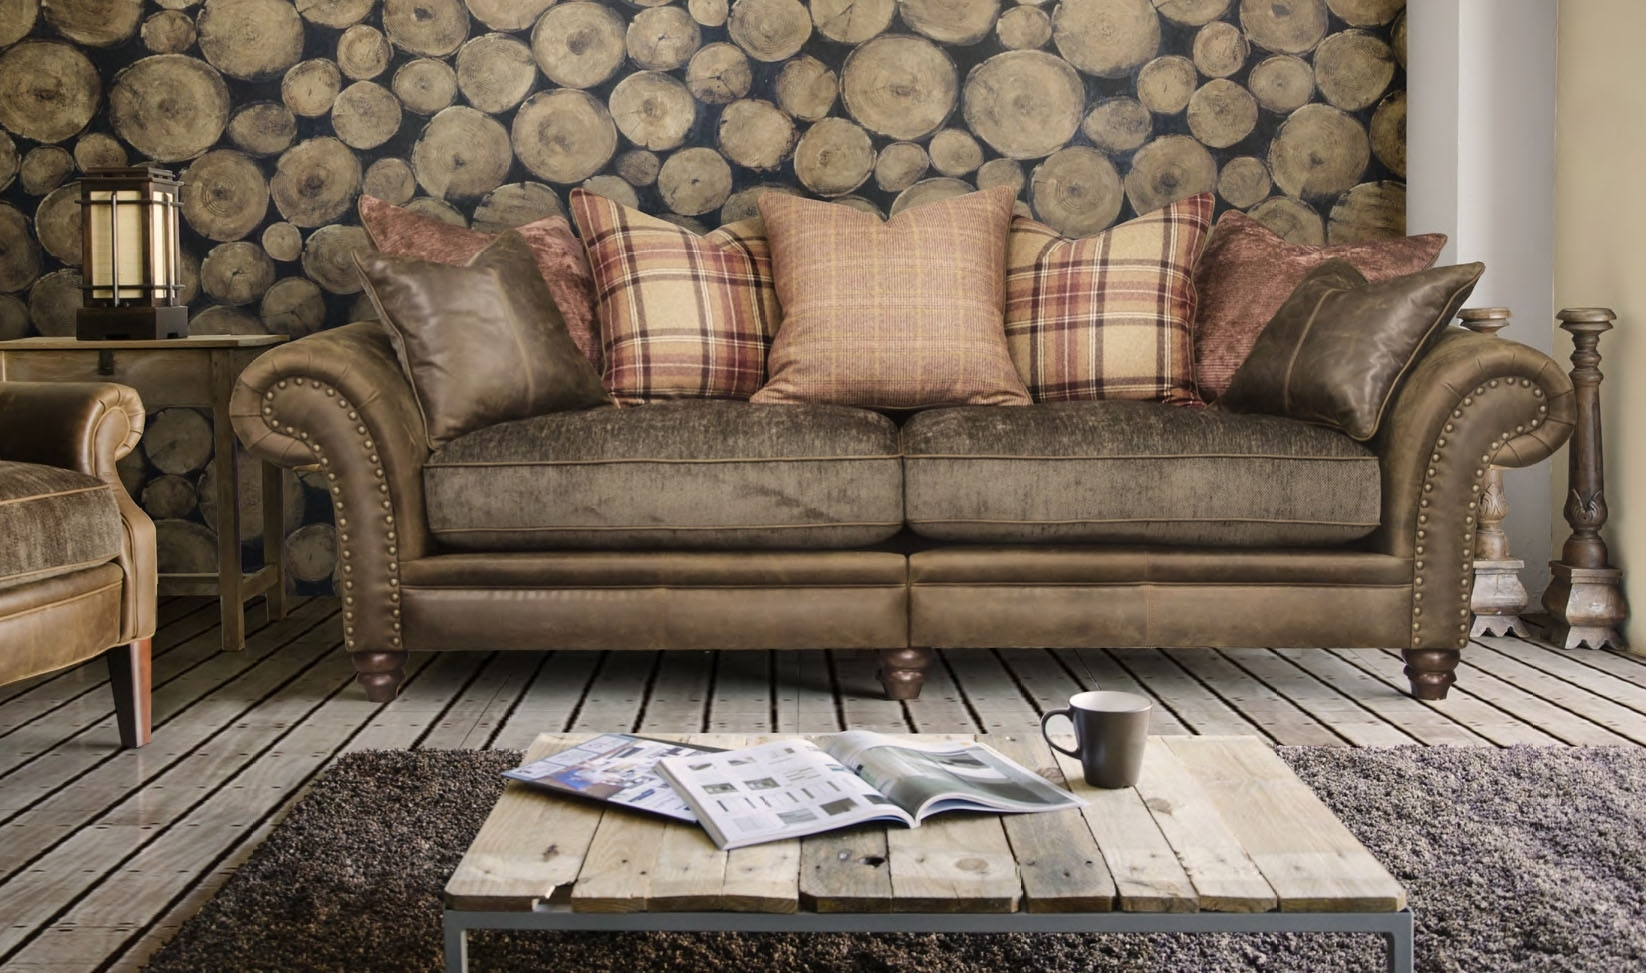 Wordsworth Leather And Fabric Sofa Range Regarding Leather And Cloth Sofas (View 3 of 10)